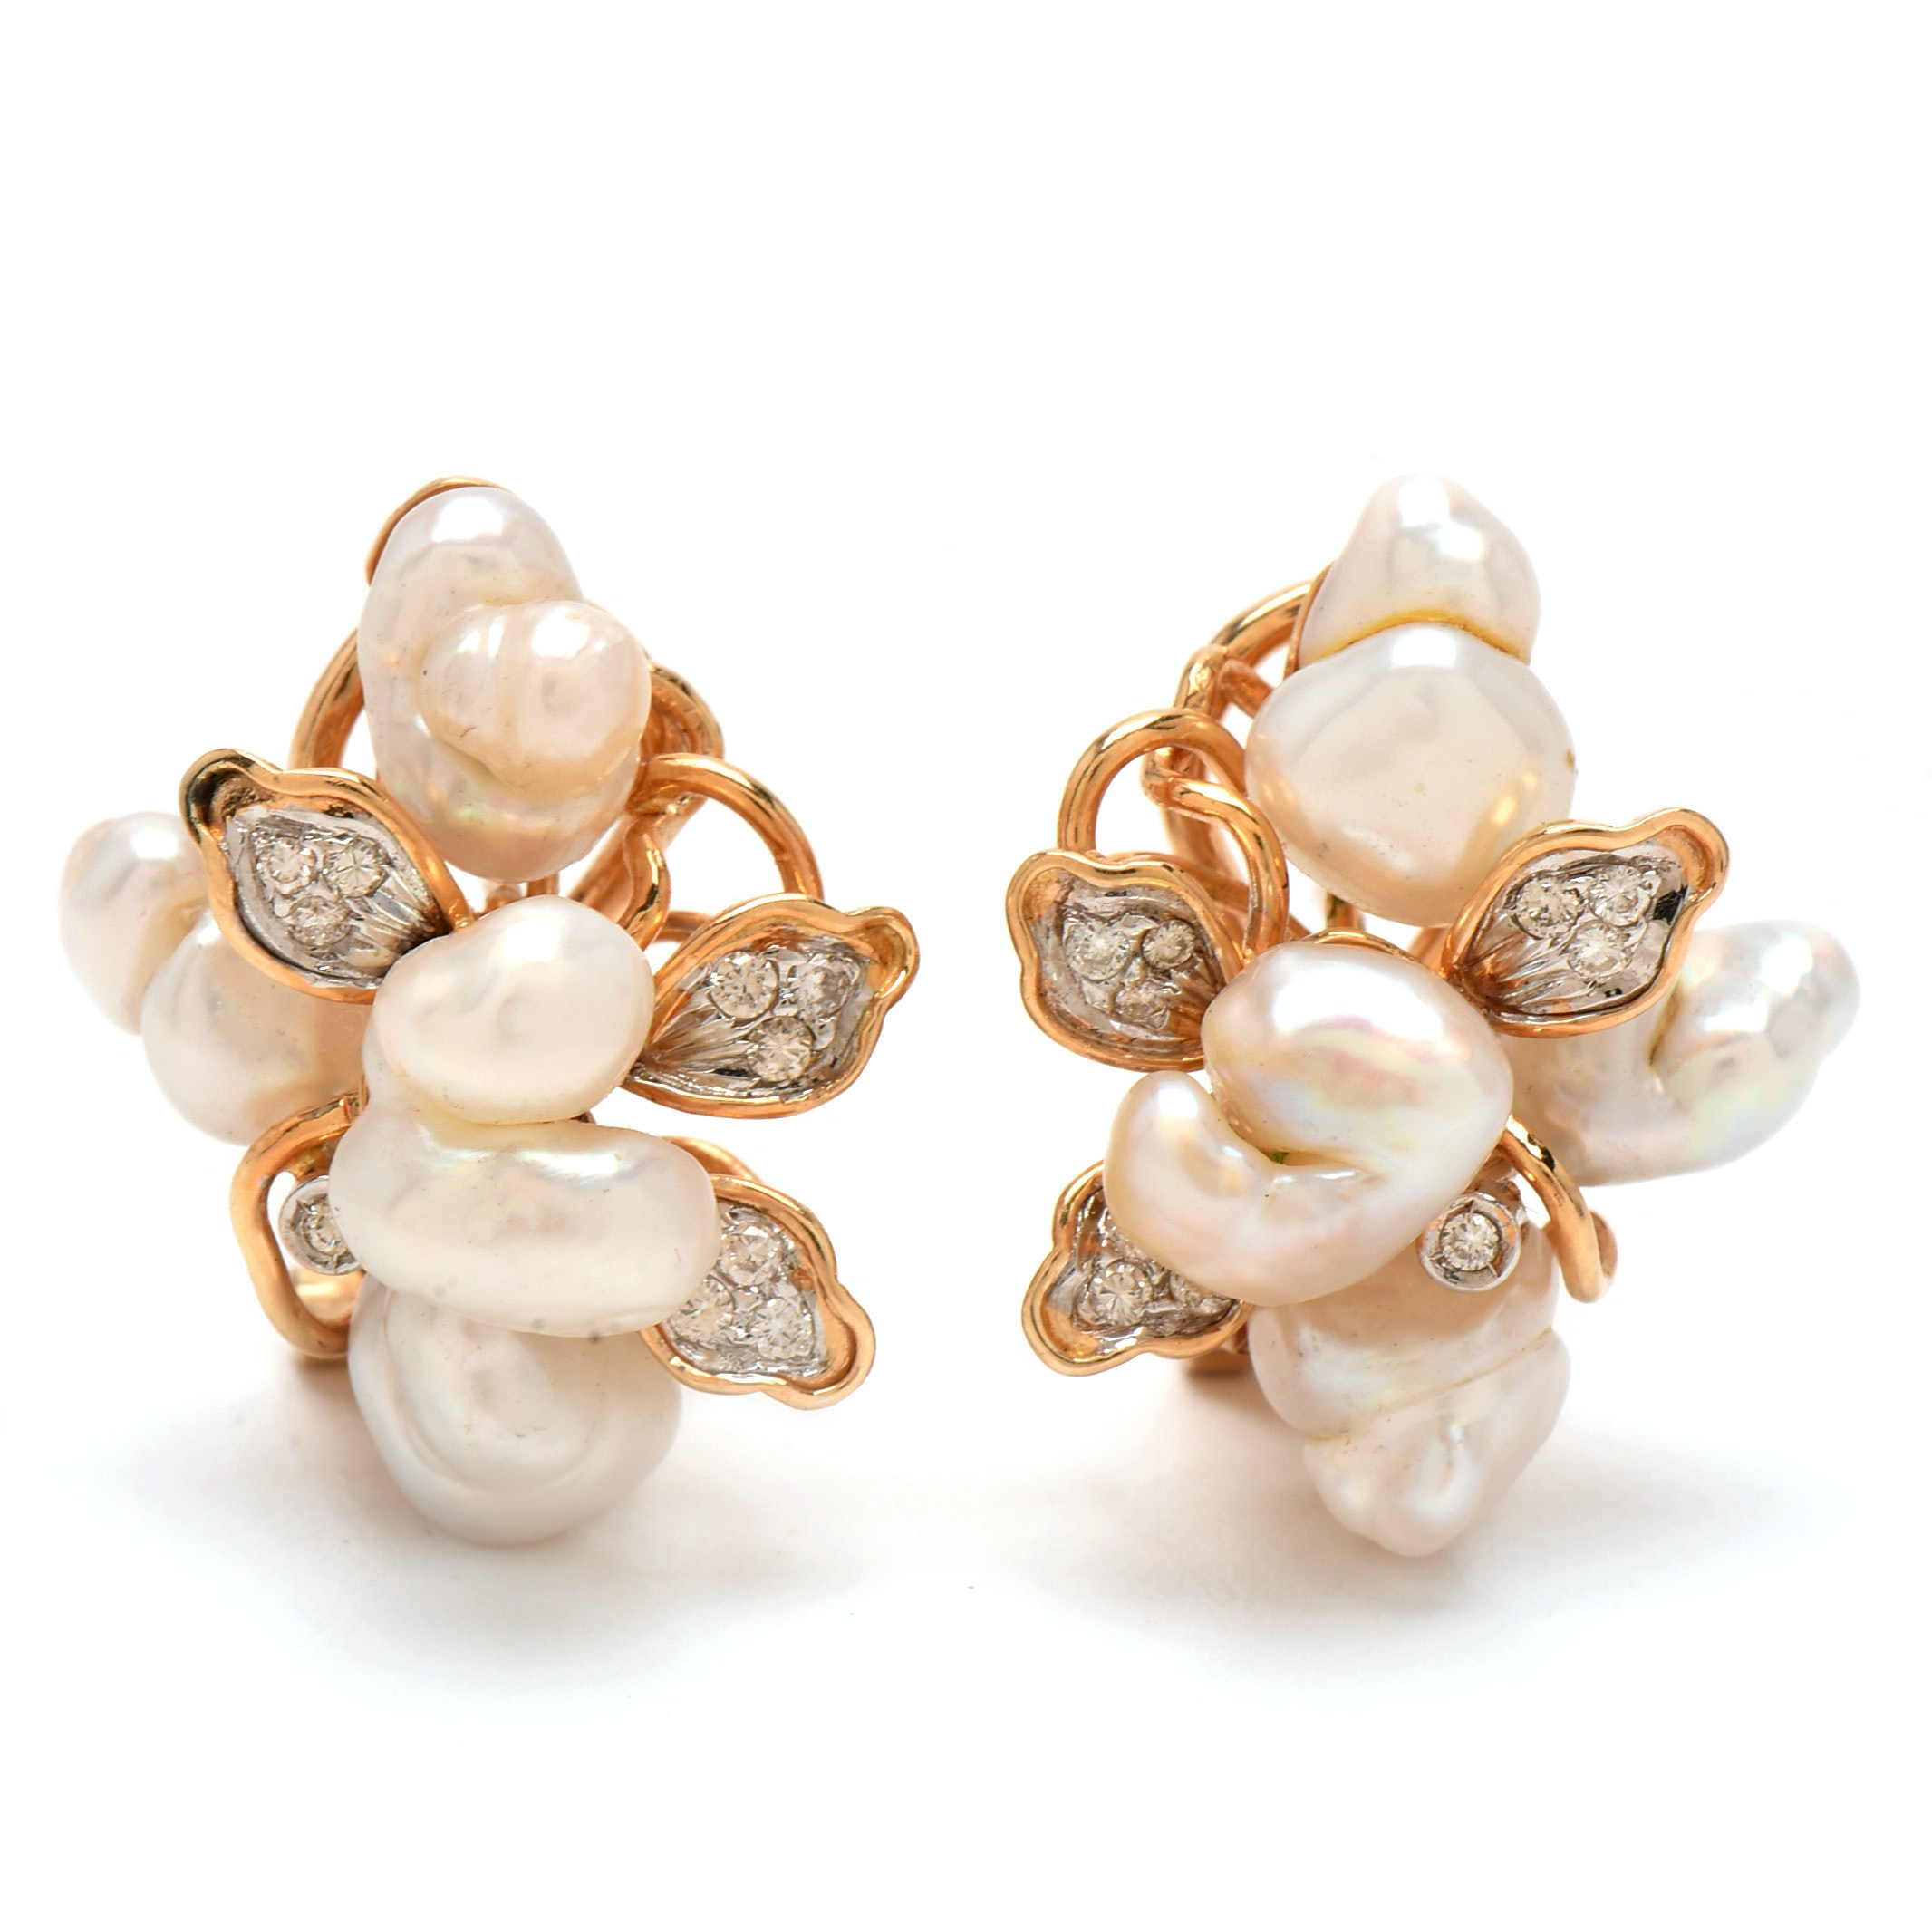 14K Yellow Gold Freeform Cultured Pearl and Diamond Floral Earrings